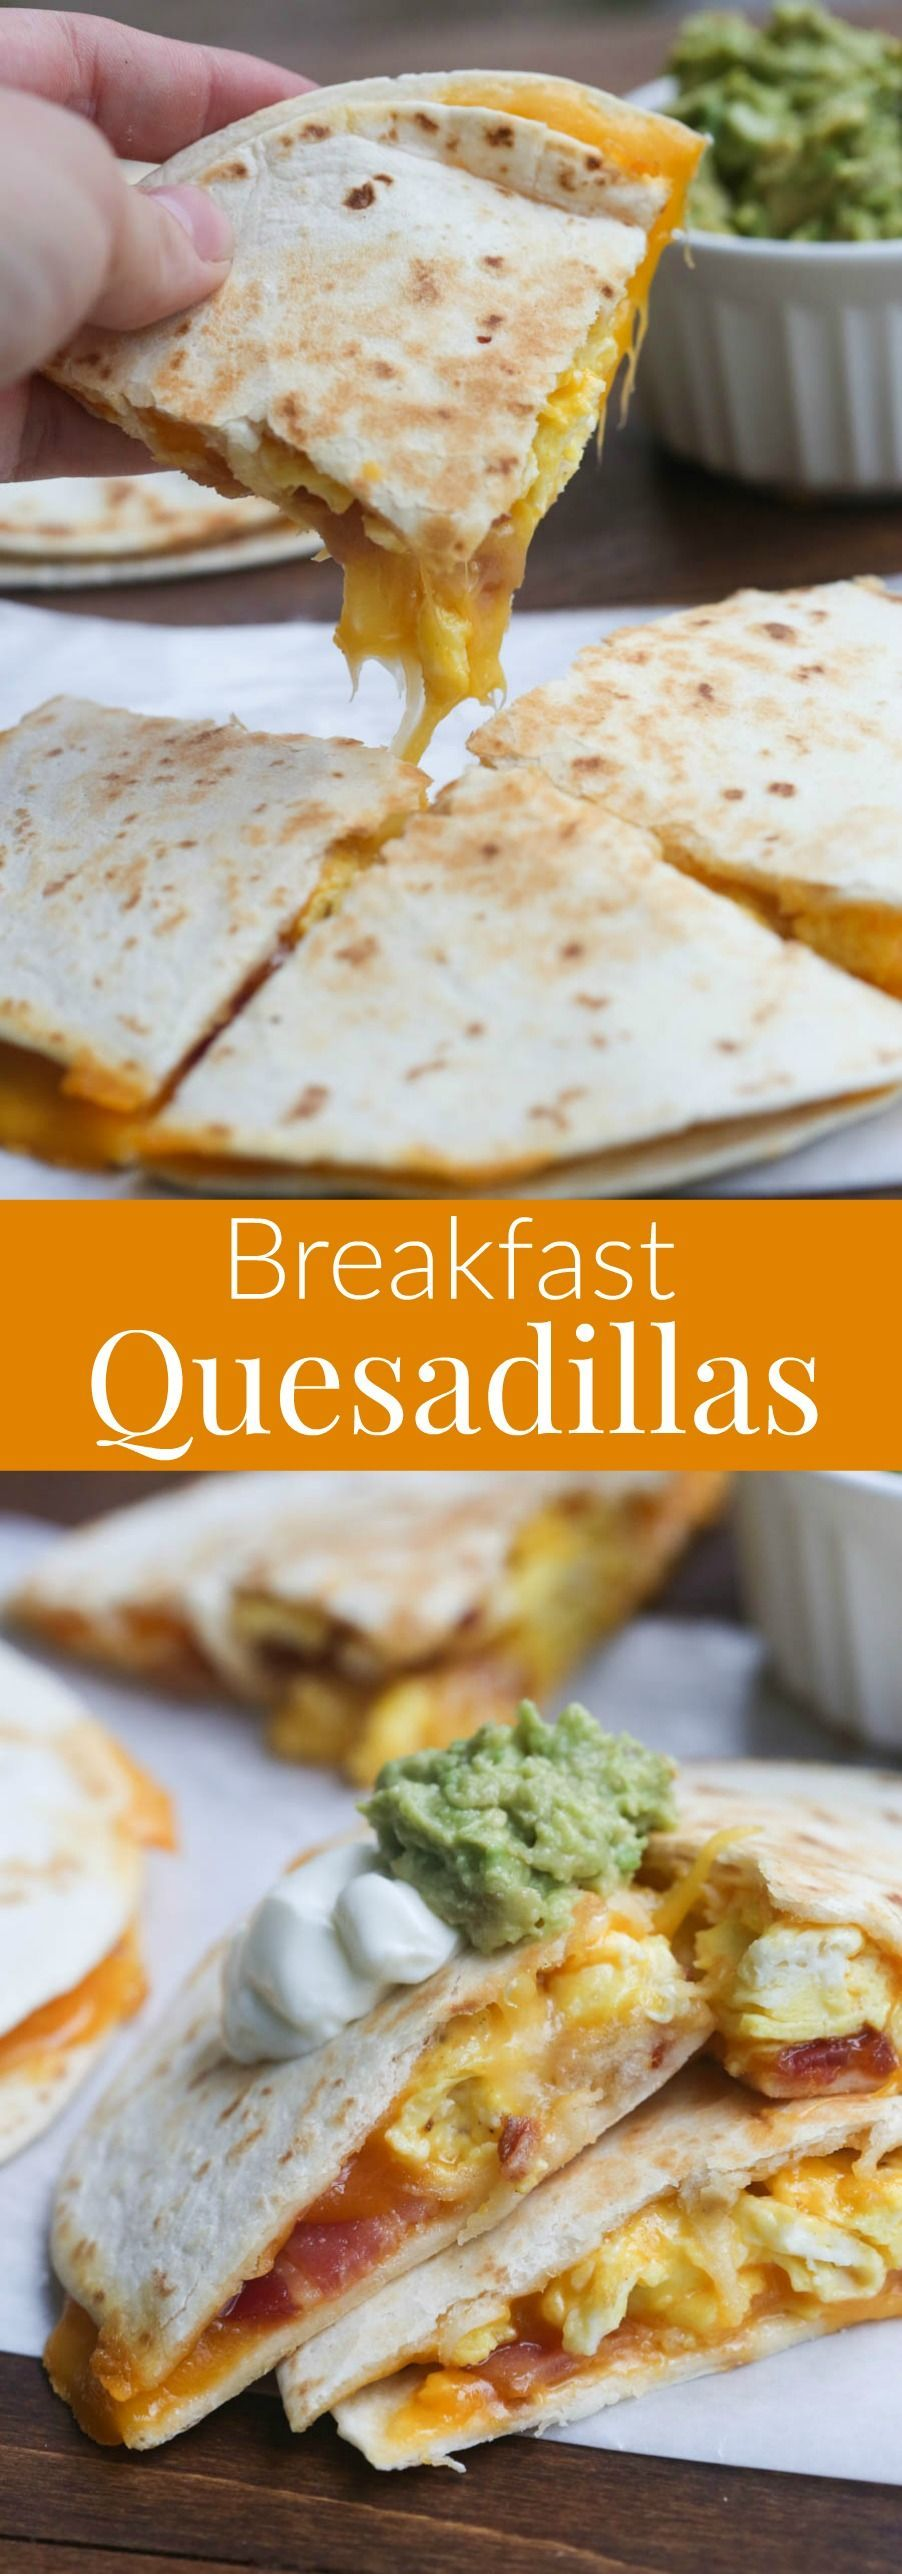 Frühstück Quesadillas -  Frühstück Quesadillas mit Speck, Ei und Käse. Eine einfache Frühstücks- oder Abendessenidee, d - #bakingrecipes #beefrecipes #breakfastrecipes #cleaneatingrecipes #cookingrecipes #foodrecipes #fruhstuck #ketorecipes #quesadillas #recipesvideos #saladrecipes #shrimprecipes #thanksgivingrecipes #veganrecipes #dinnerideas2019